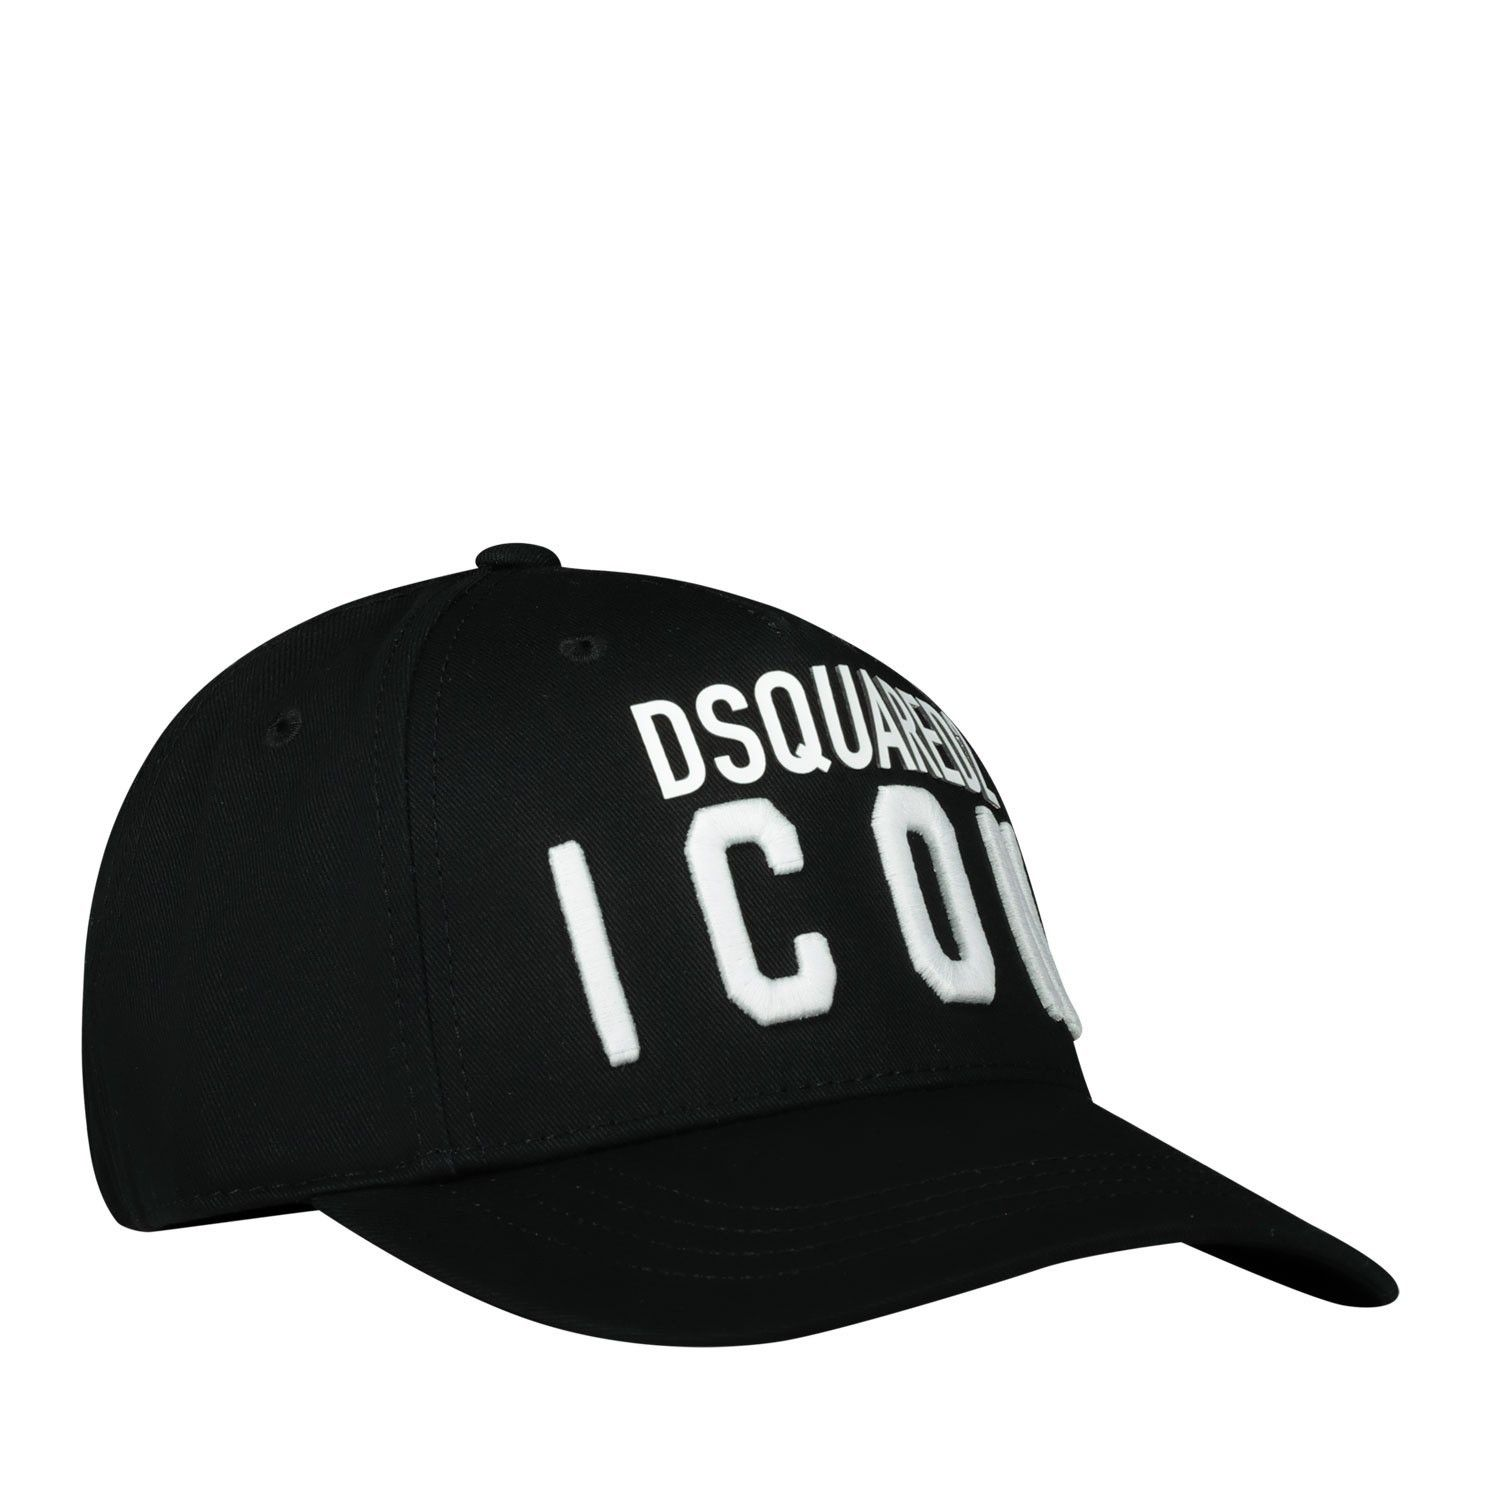 Picture of Dsquared2 DQ04F6 baby hat black